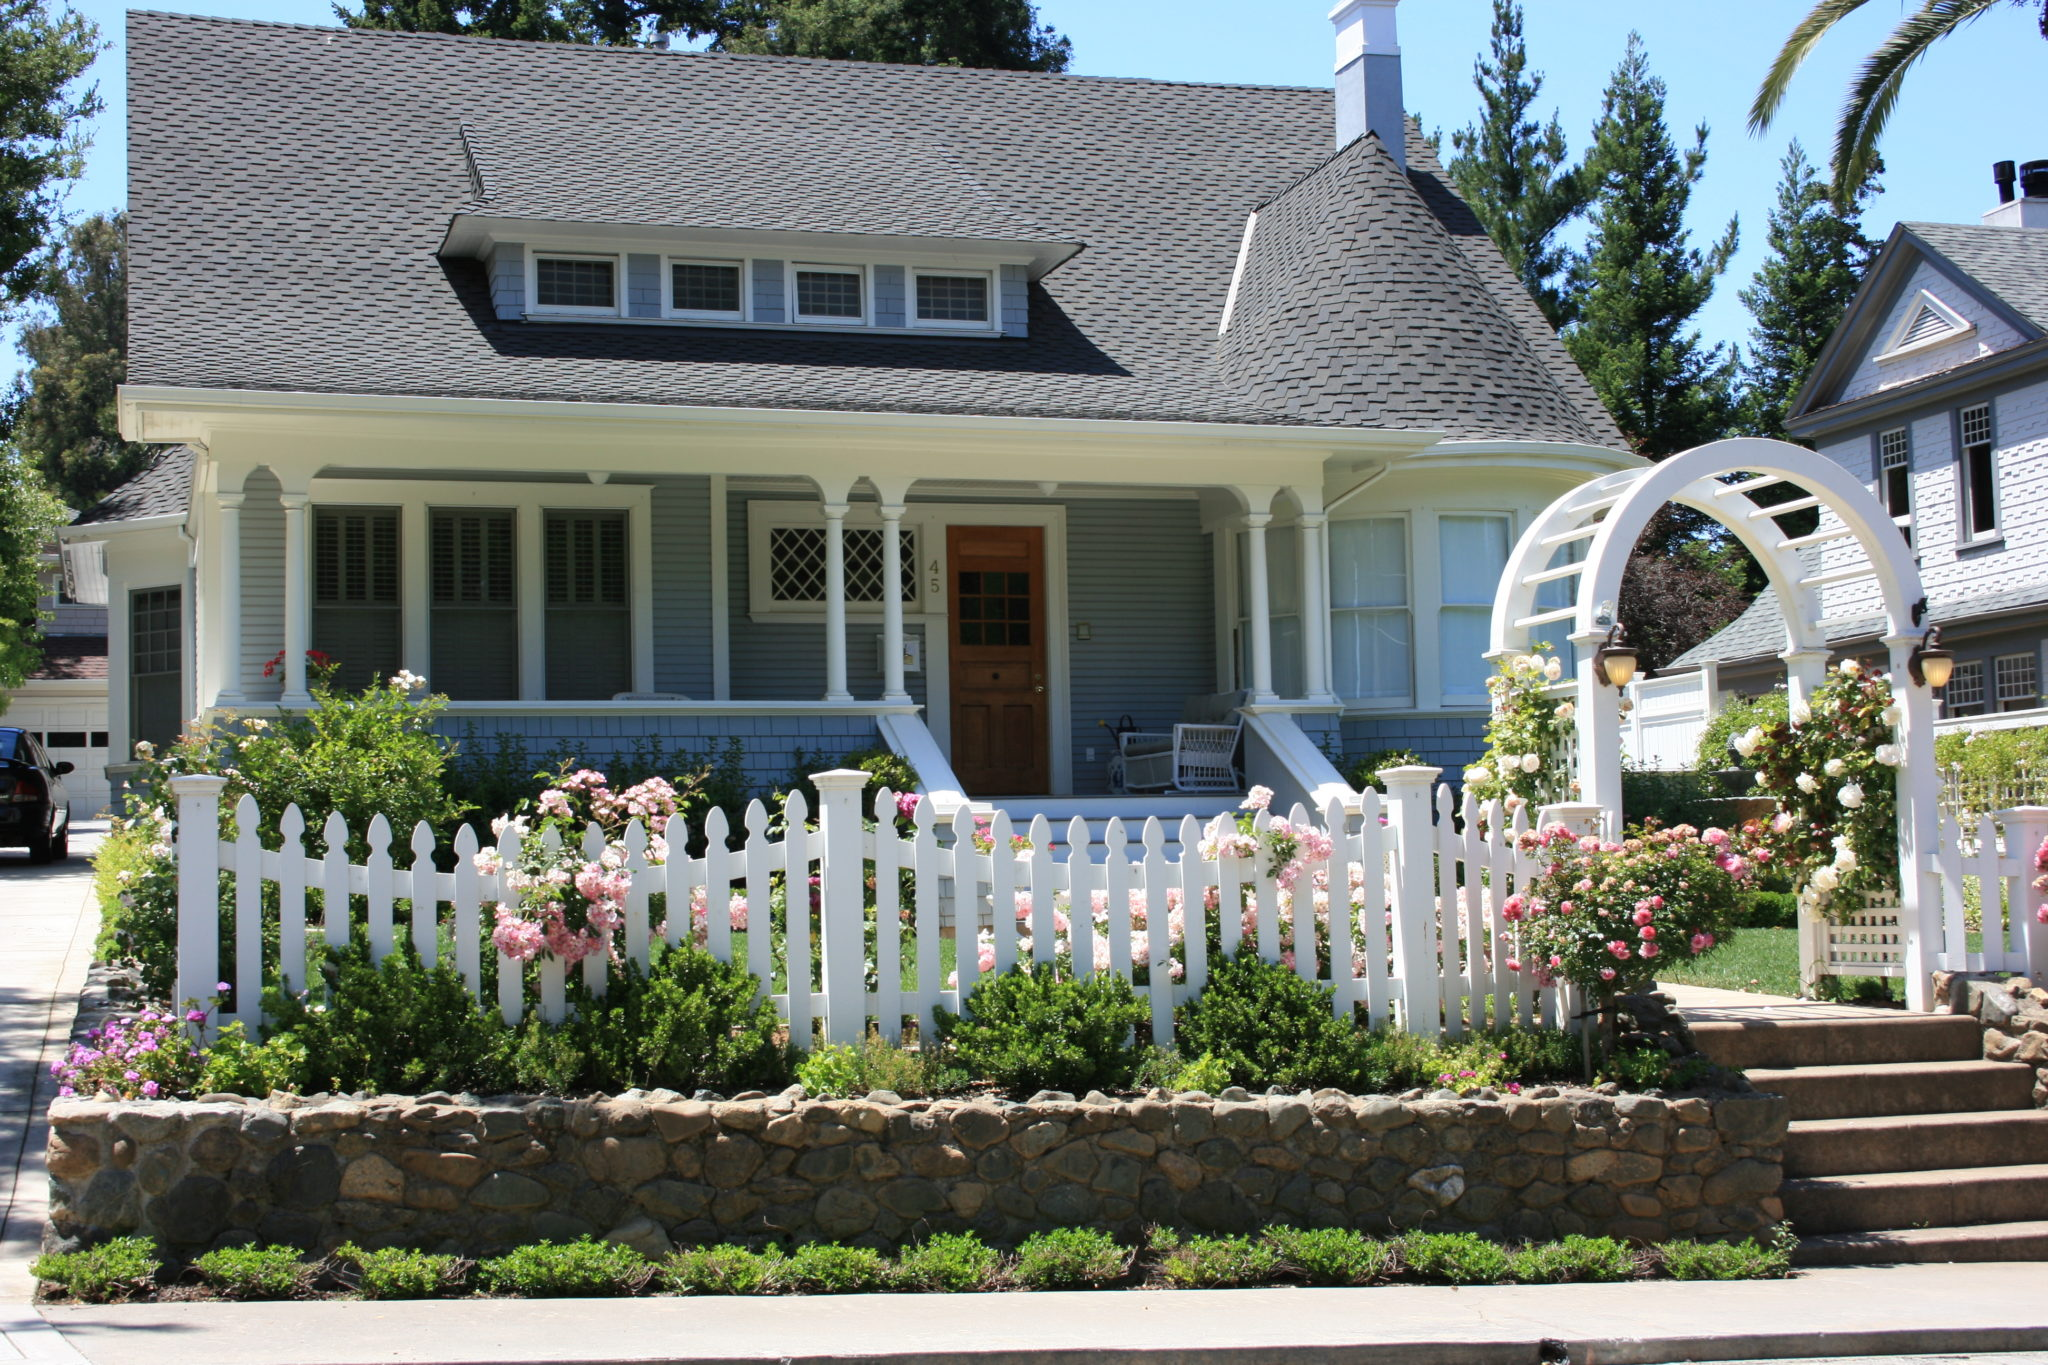 Noble A Picket Doll House Picket Fence Picket Fence House View Front Gallery Living American Dream curbed White Picket Fence House